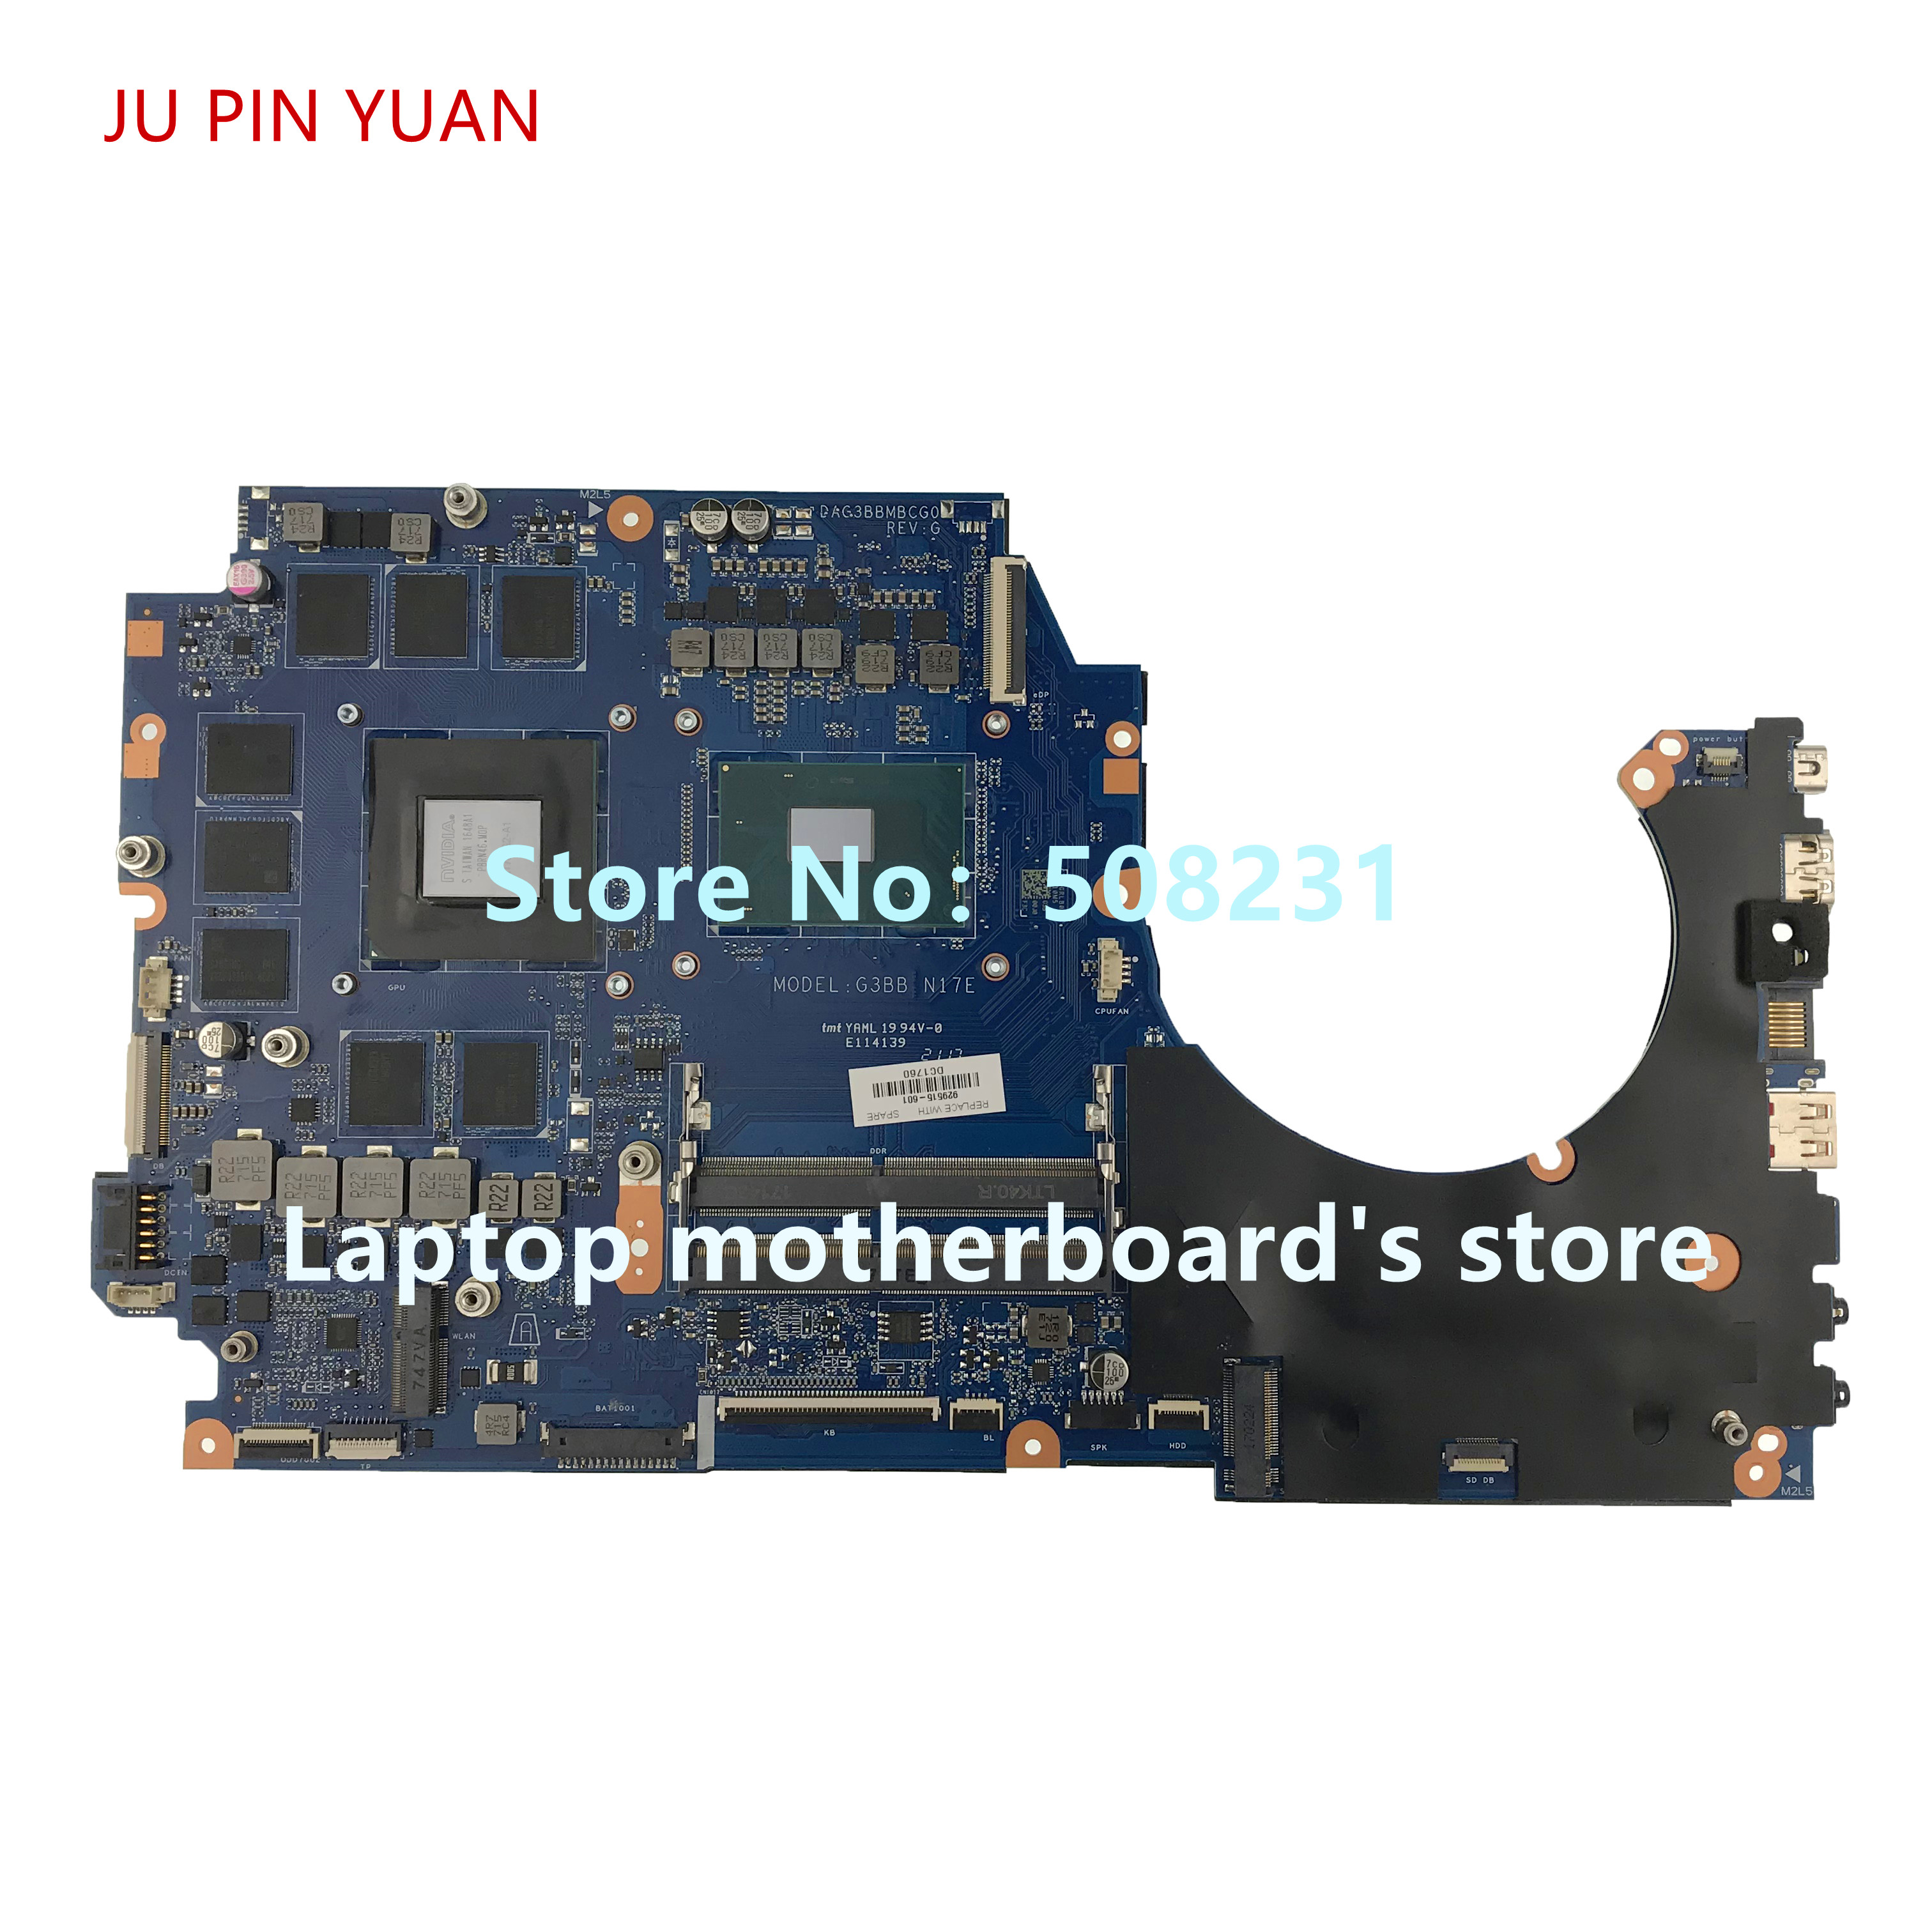 JU PIN YUAN 929515-601 G3BB DAG3BBMBCG0 motherboard For OMEN by HP Laptop 17-AN Notebook PC GTX1070 8GB i7-7700HQ fully TestedJU PIN YUAN 929515-601 G3BB DAG3BBMBCG0 motherboard For OMEN by HP Laptop 17-AN Notebook PC GTX1070 8GB i7-7700HQ fully Tested